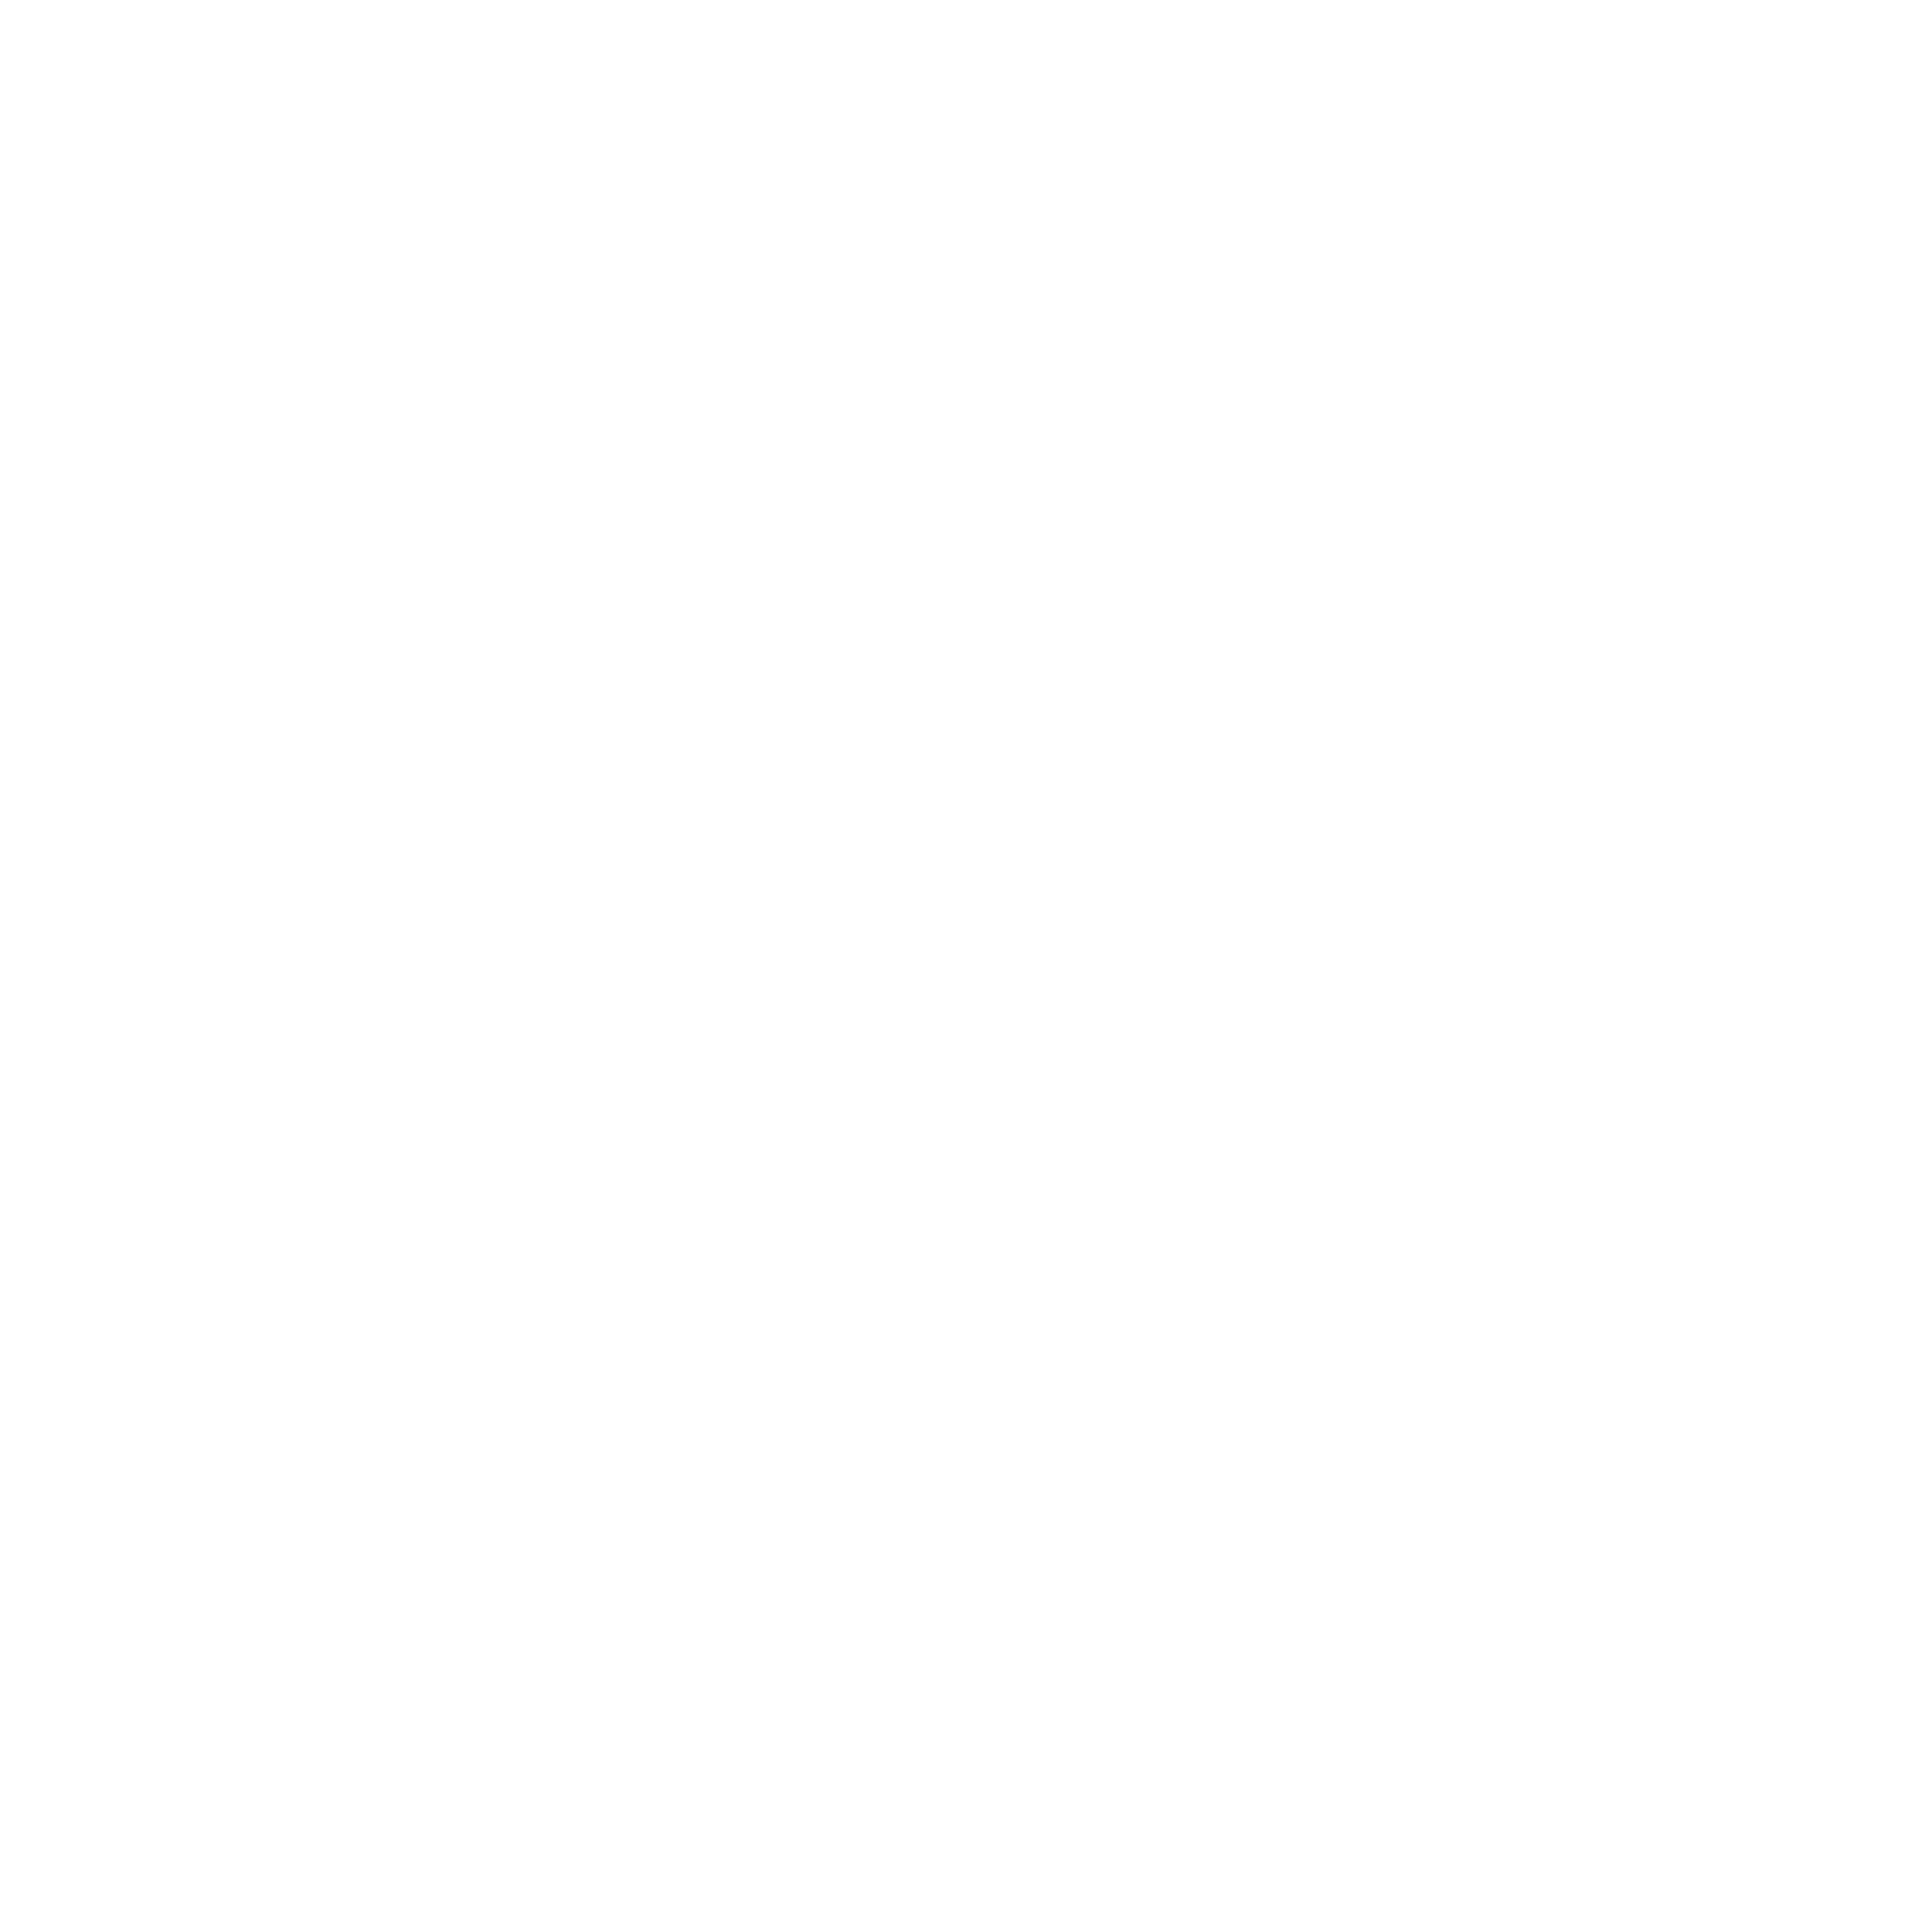 201819TUITION-06.png